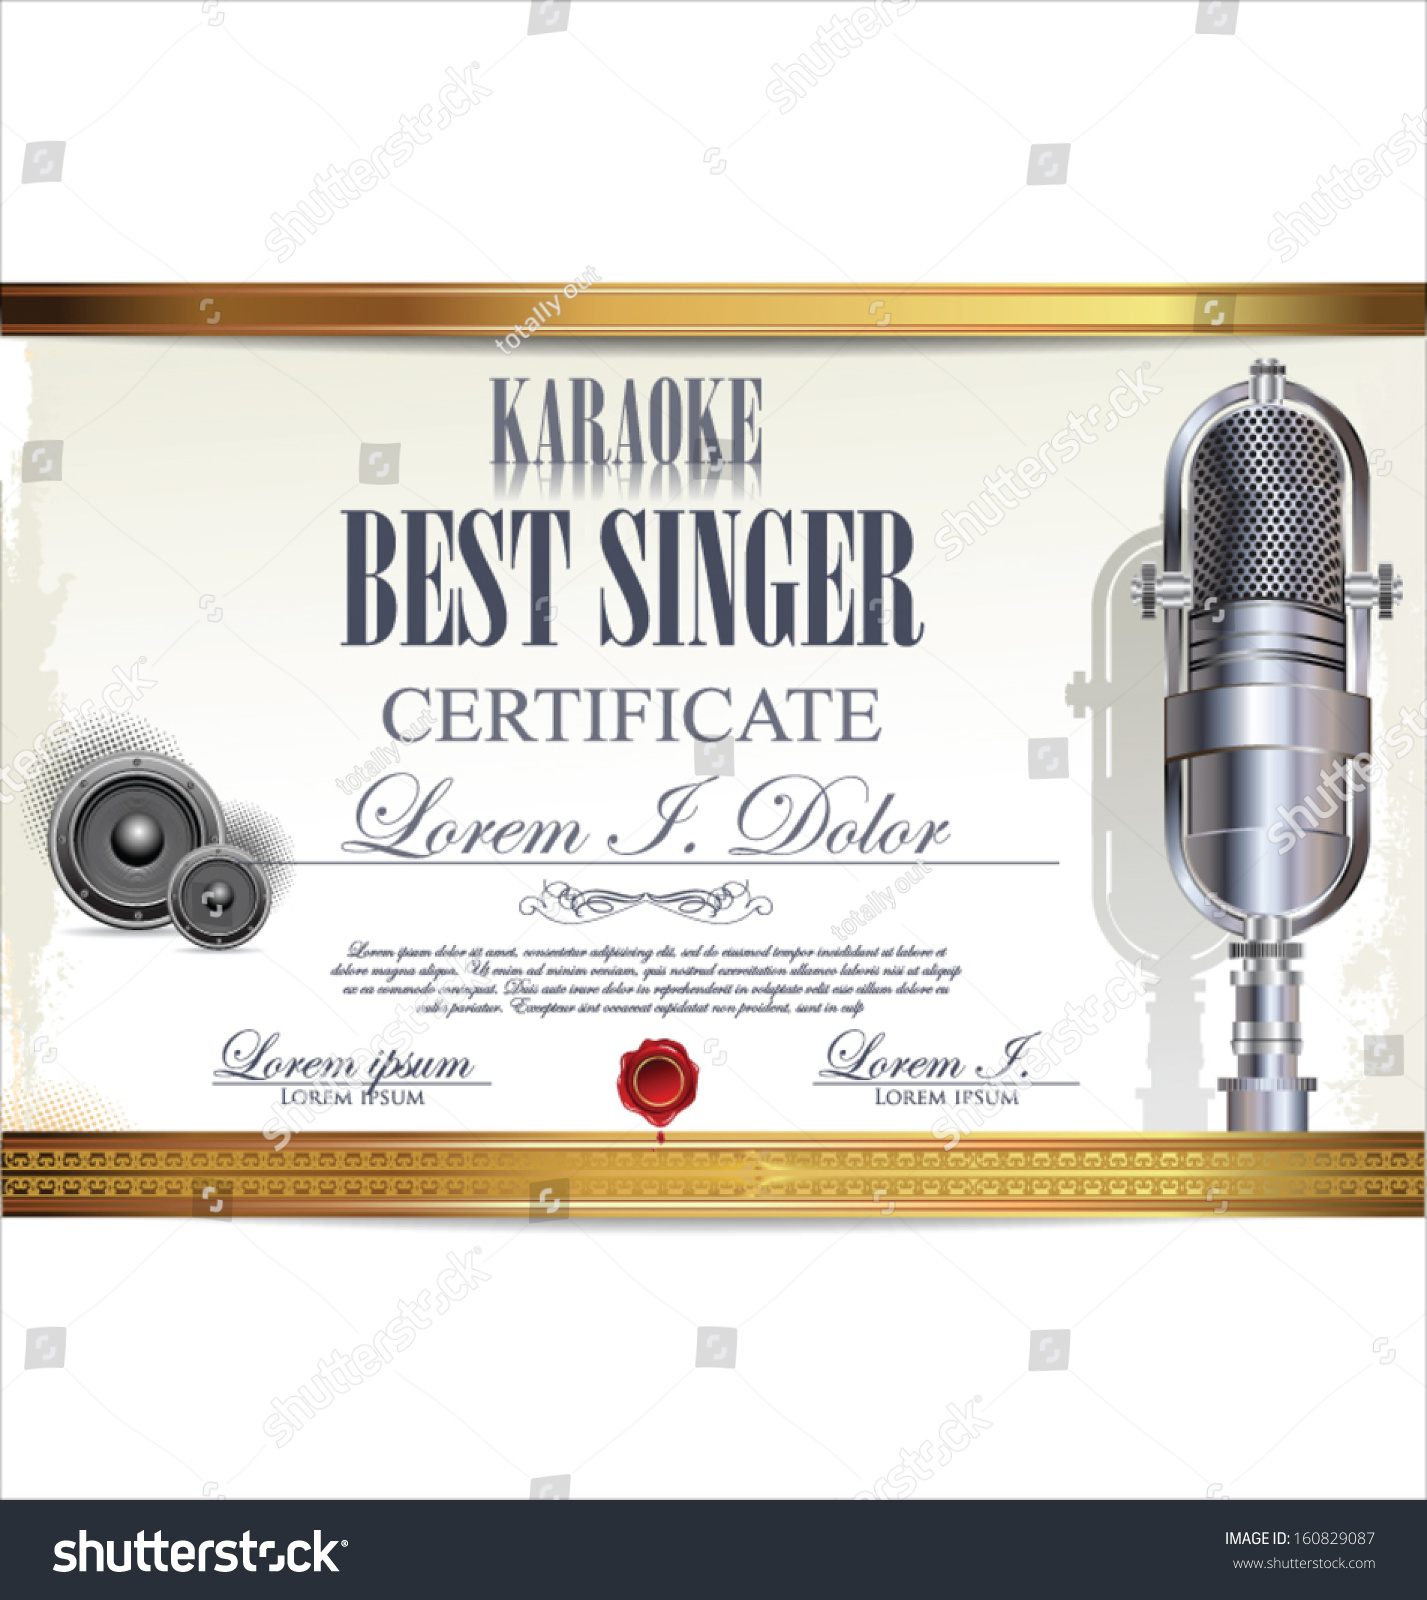 Karaoke Certificate Template Best Singer Stock Vector (Royalty Free